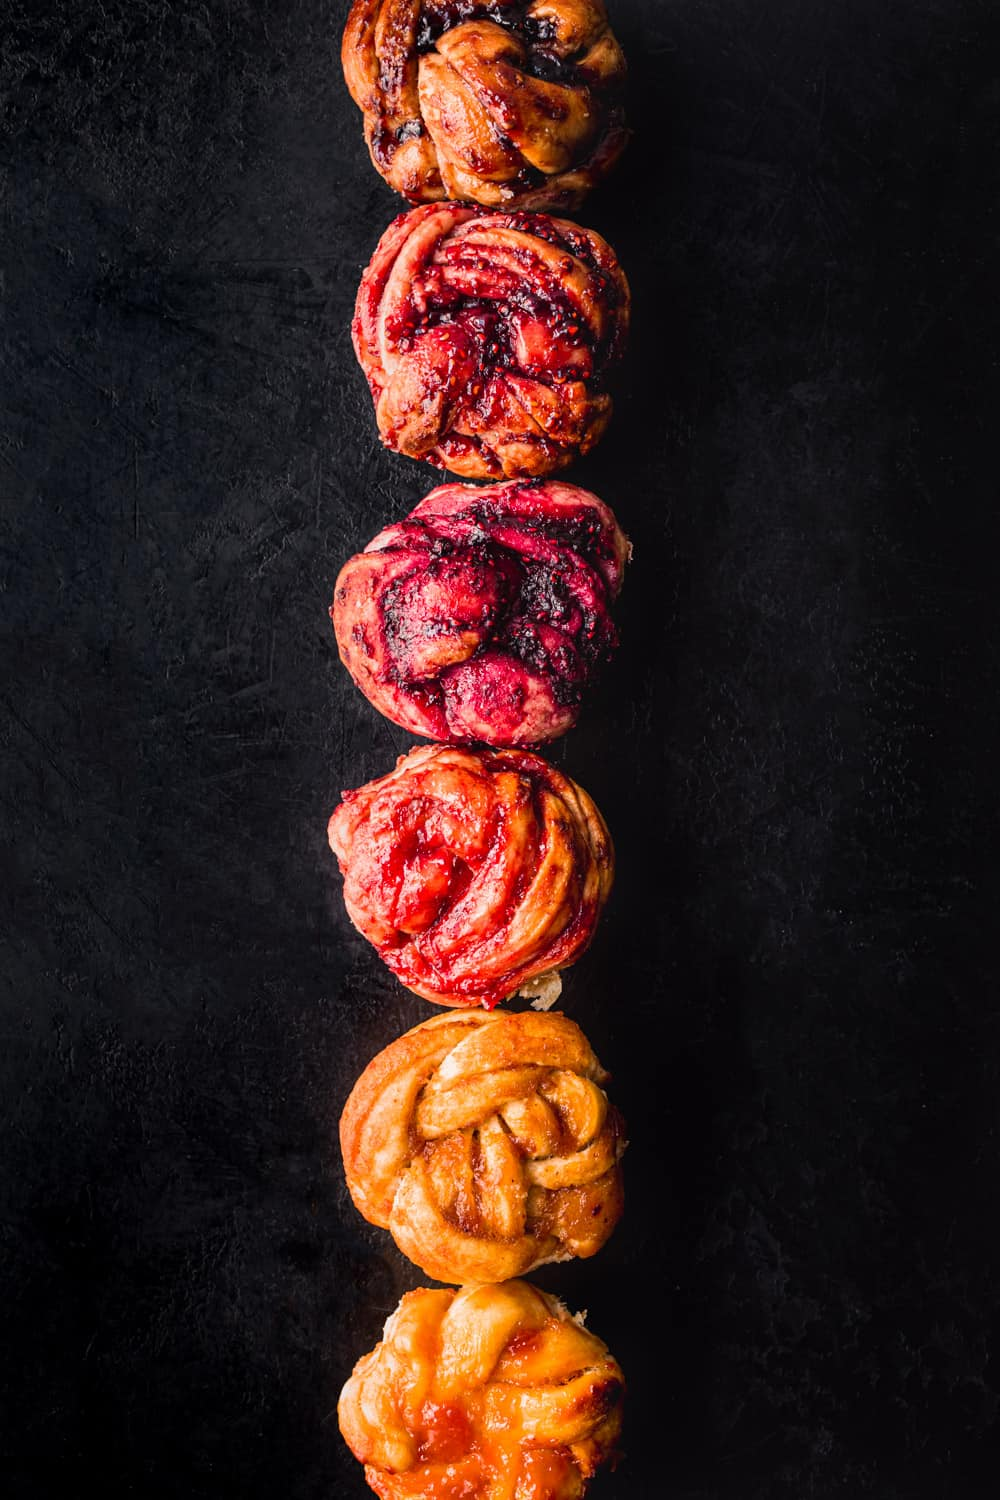 Challah babka buns aligned in a straight line on a black backdrop, all different colors; overhead shot.